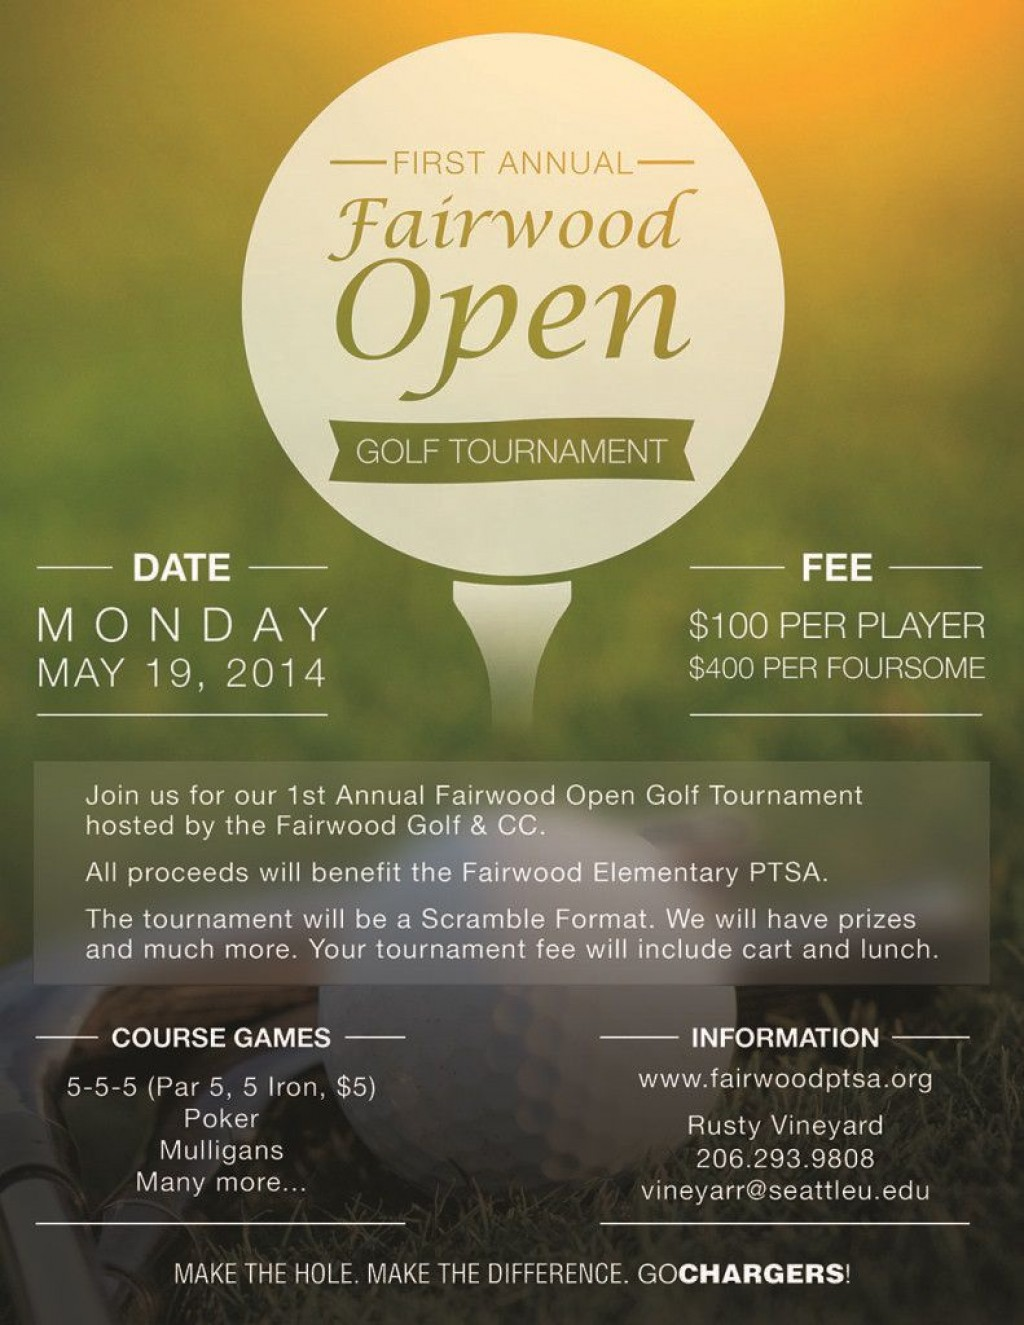 006 Archaicawful Free Charity Golf Tournament Flyer Template Design Large